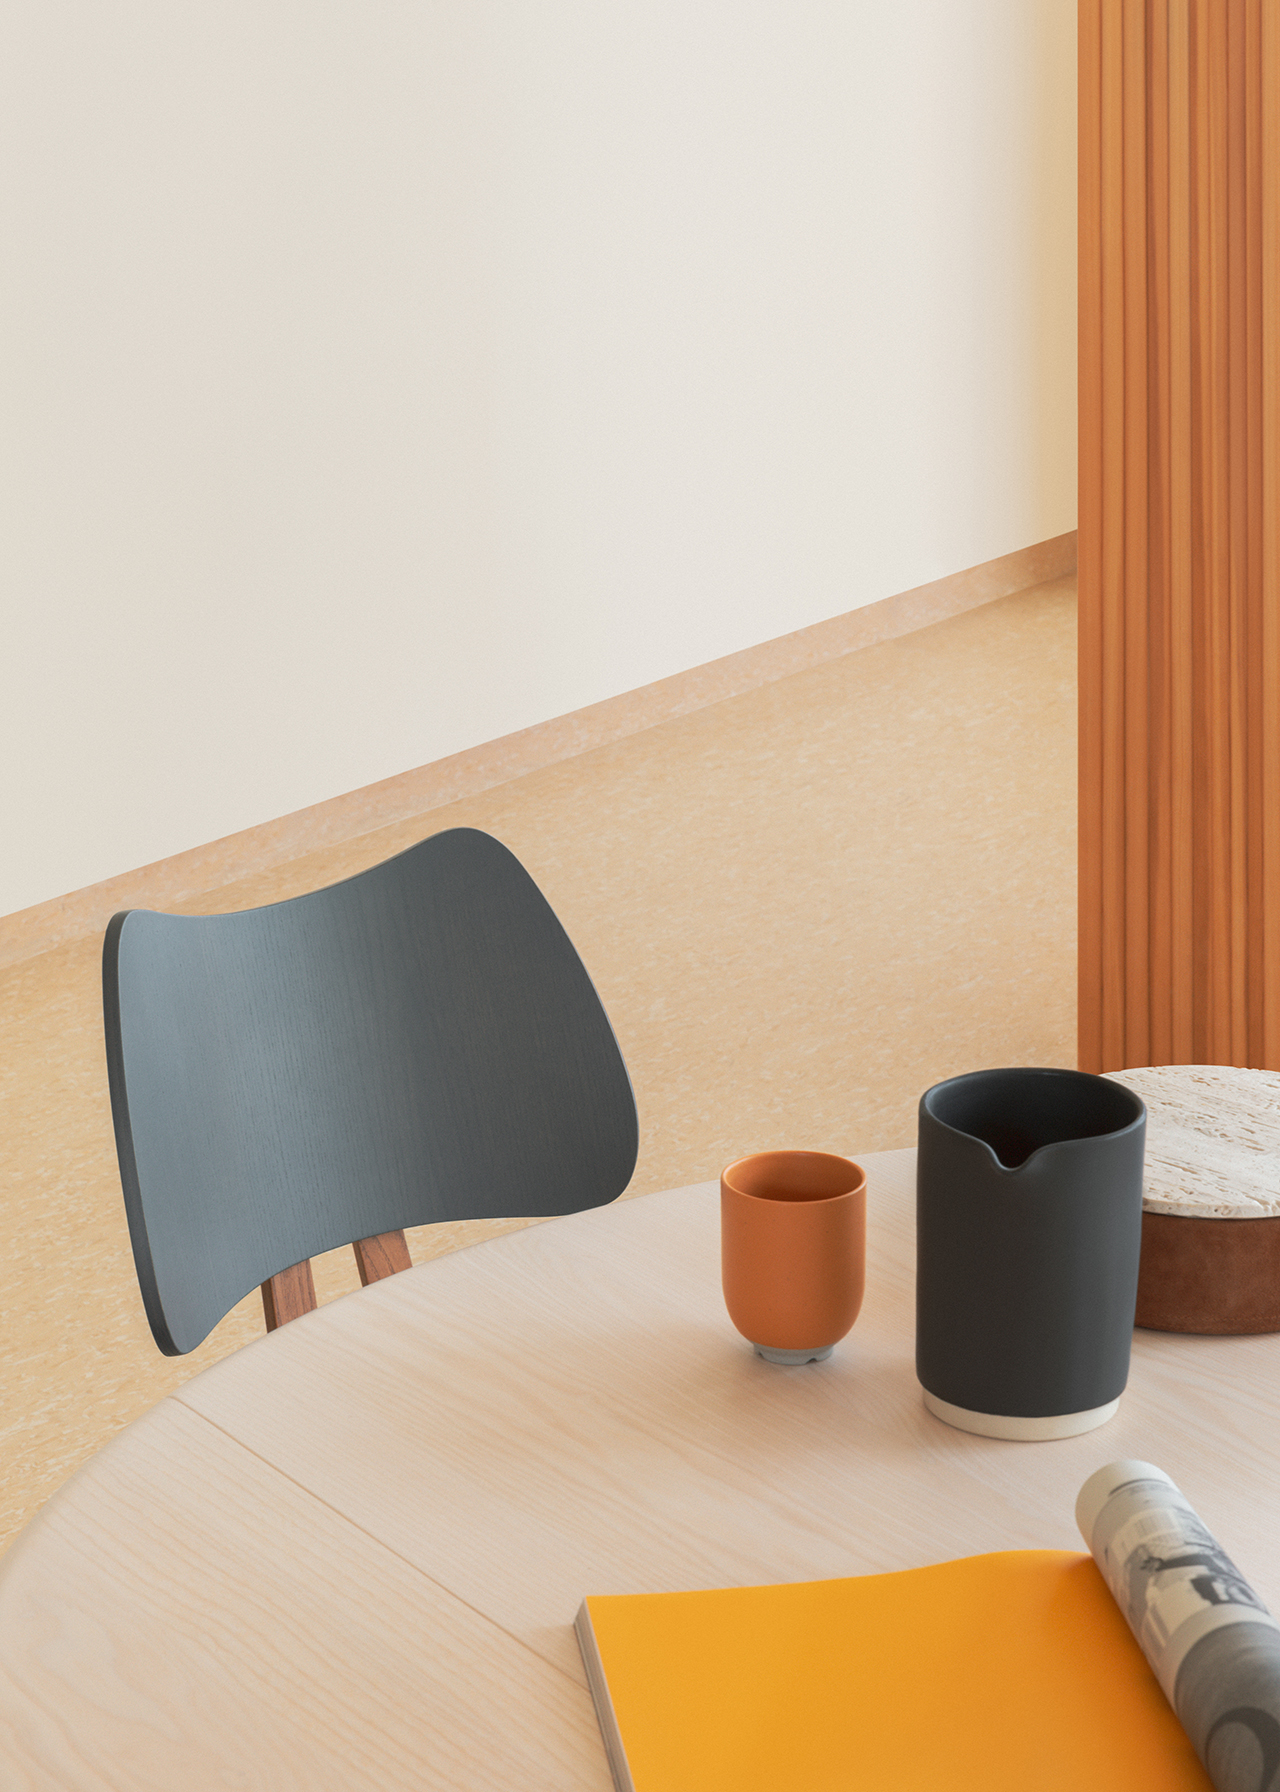 detail of table and chair